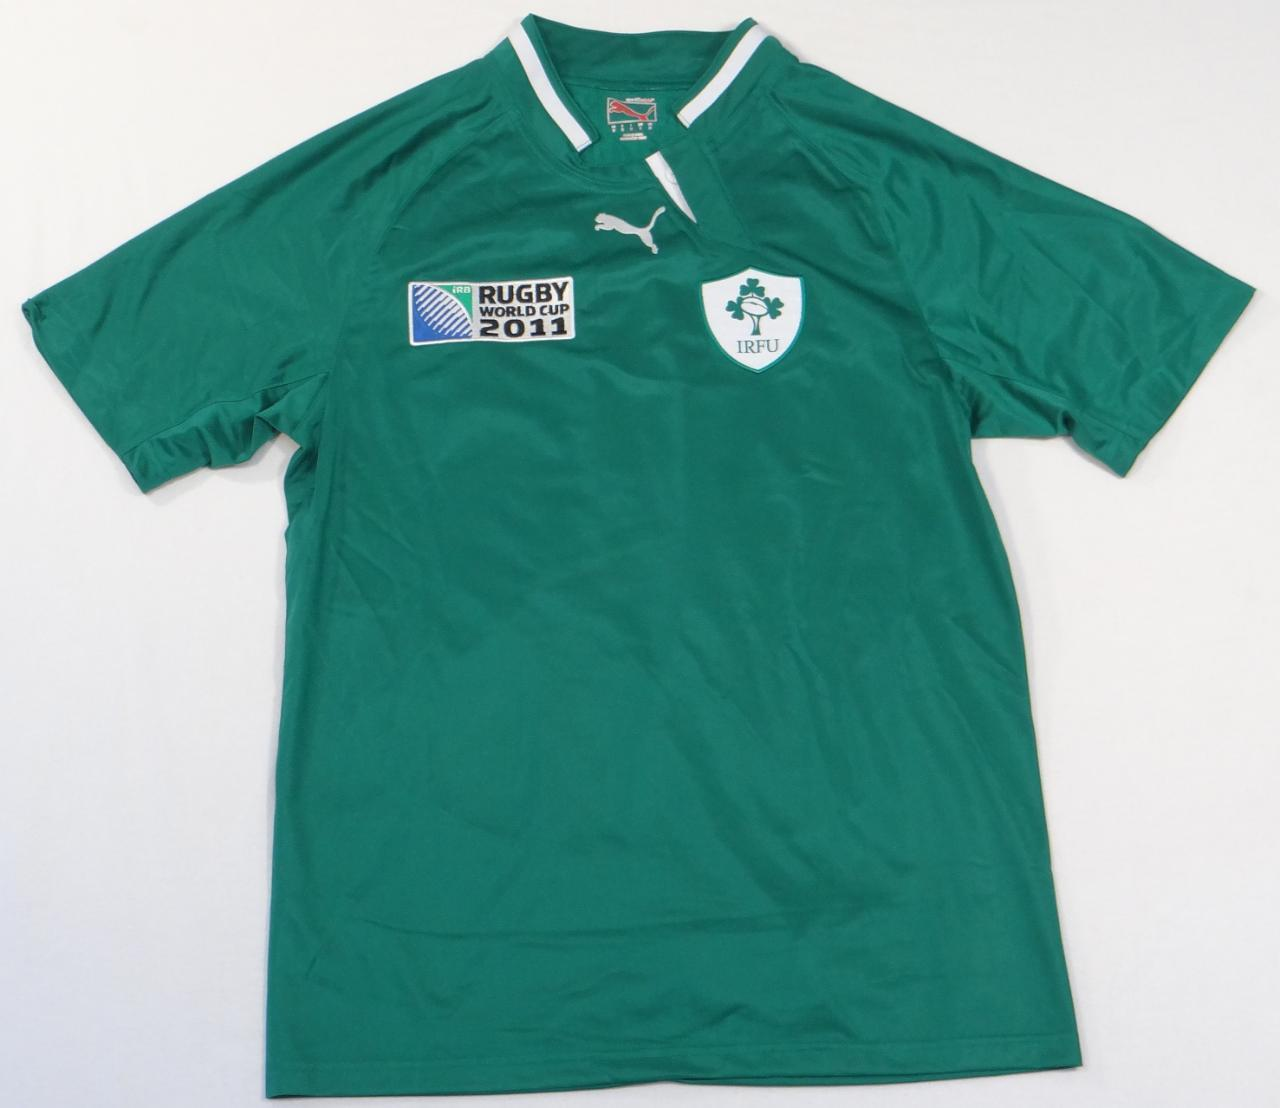 026cb97c231da Puma Irish Rugby Football Union IRFU Green and 15 similar items